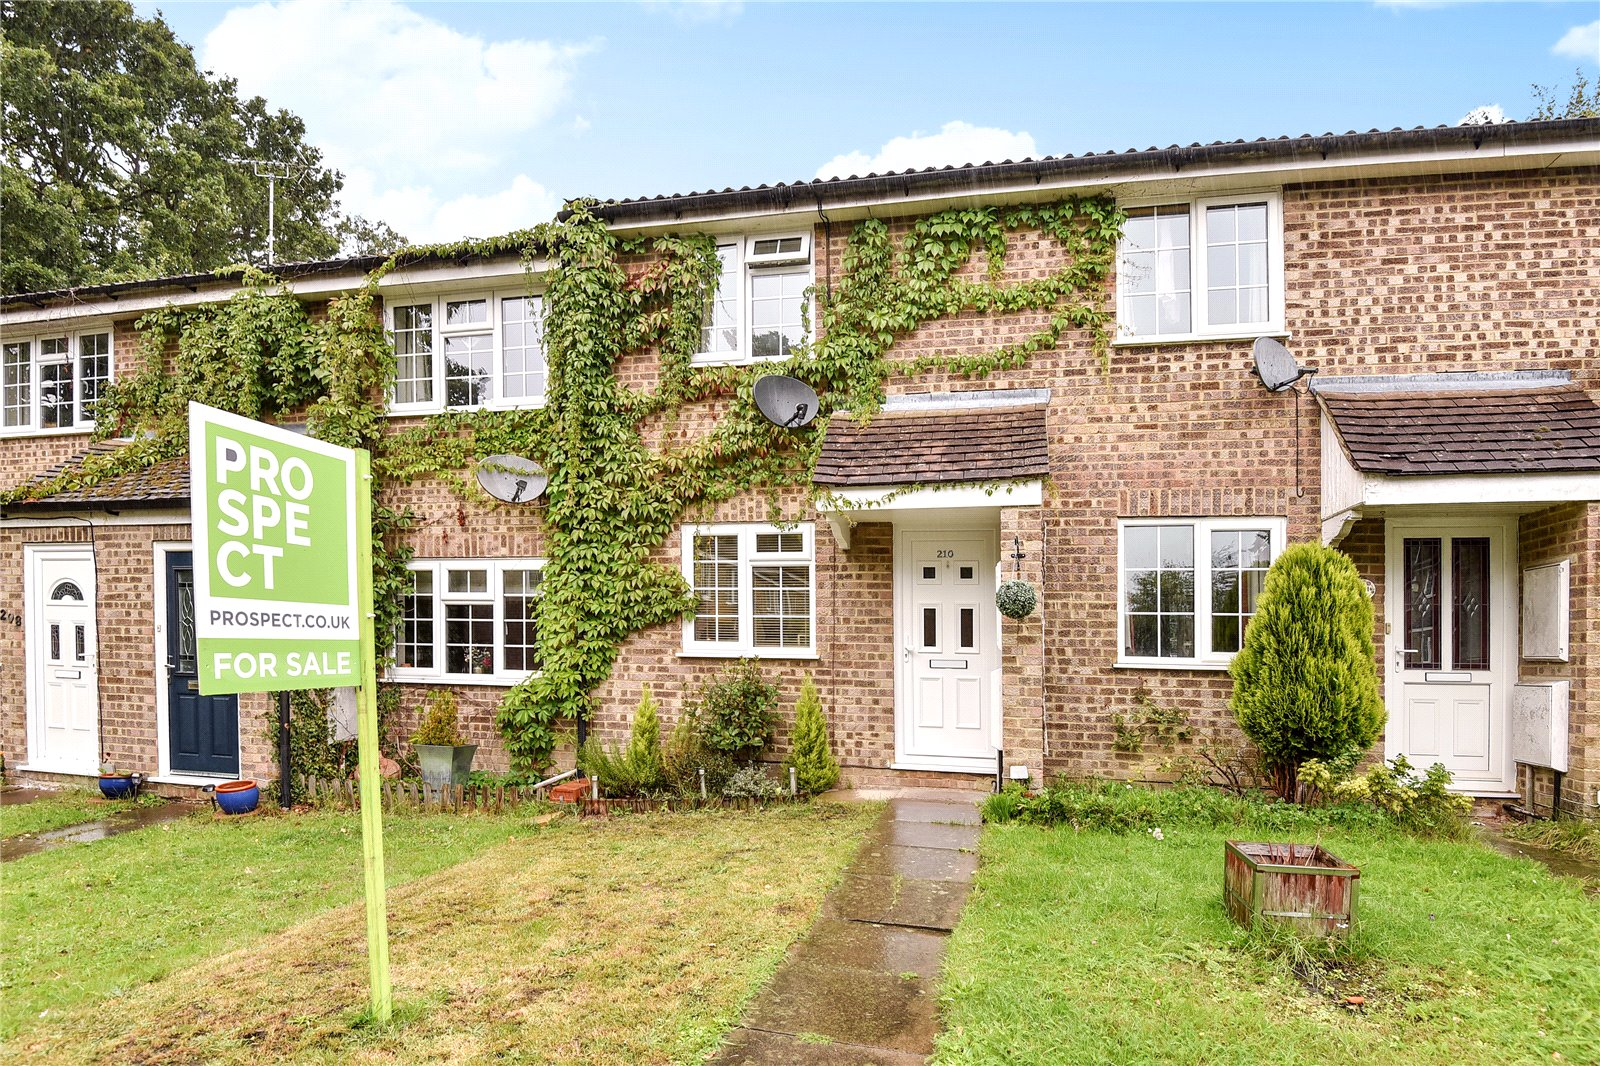 2 Bedrooms Terraced House for sale in Evenlode Way, Sandhurst, Berkshire, GU47